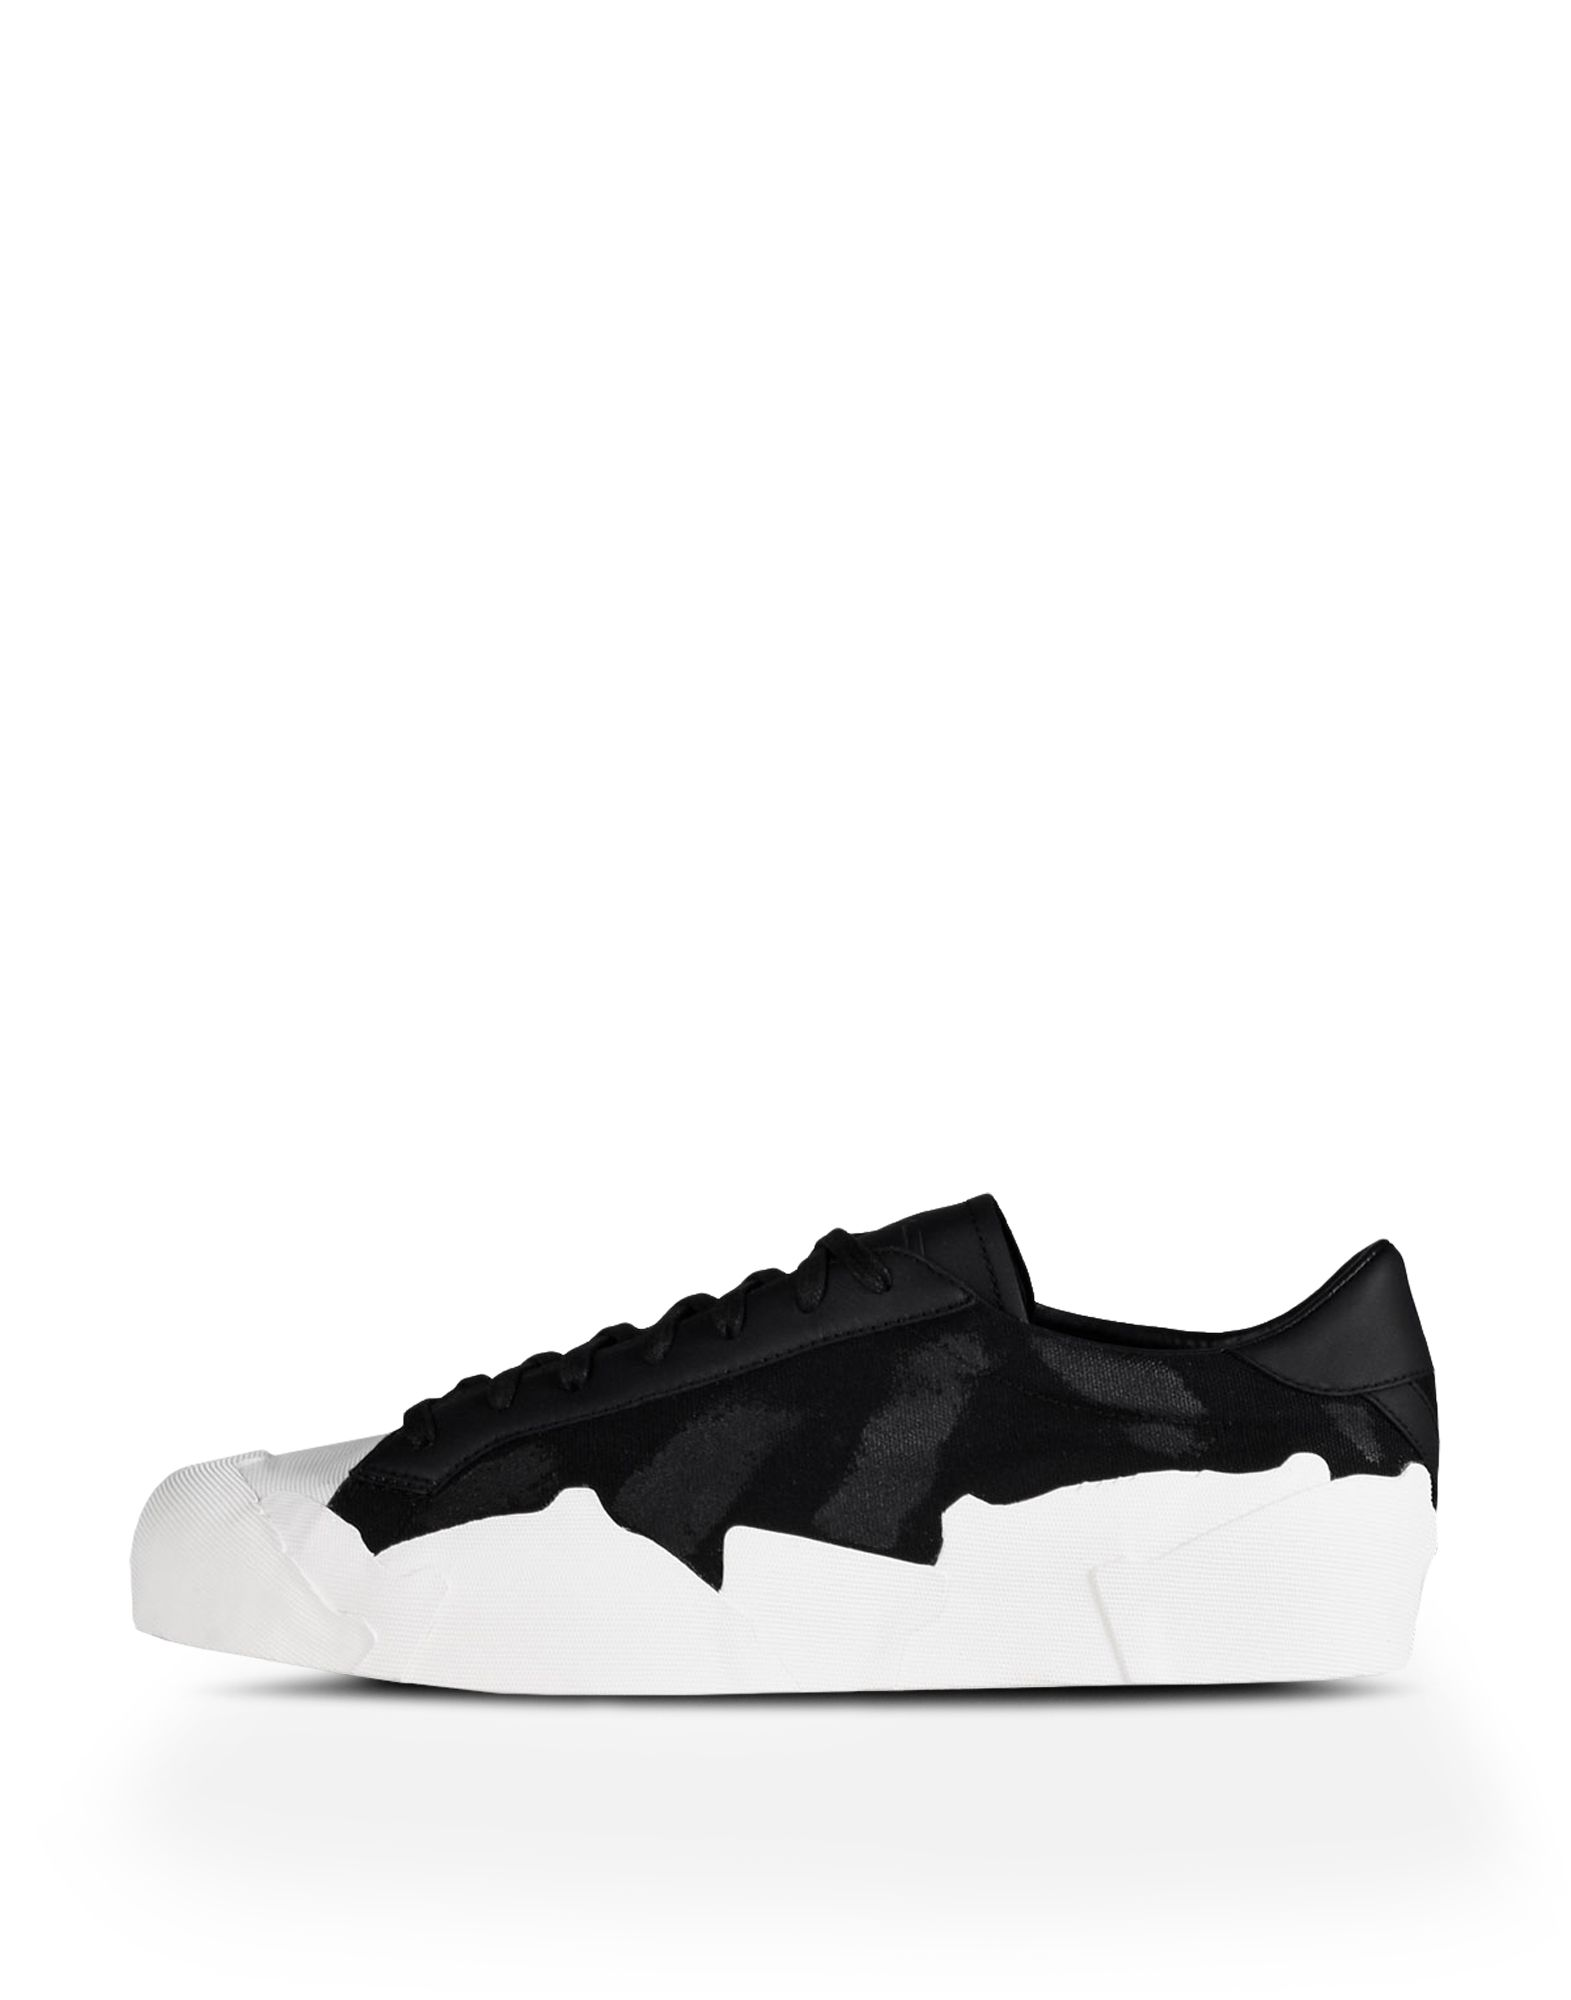 YY TAKUSAN LOW Sneakers | Adidas Y 3 Official Site